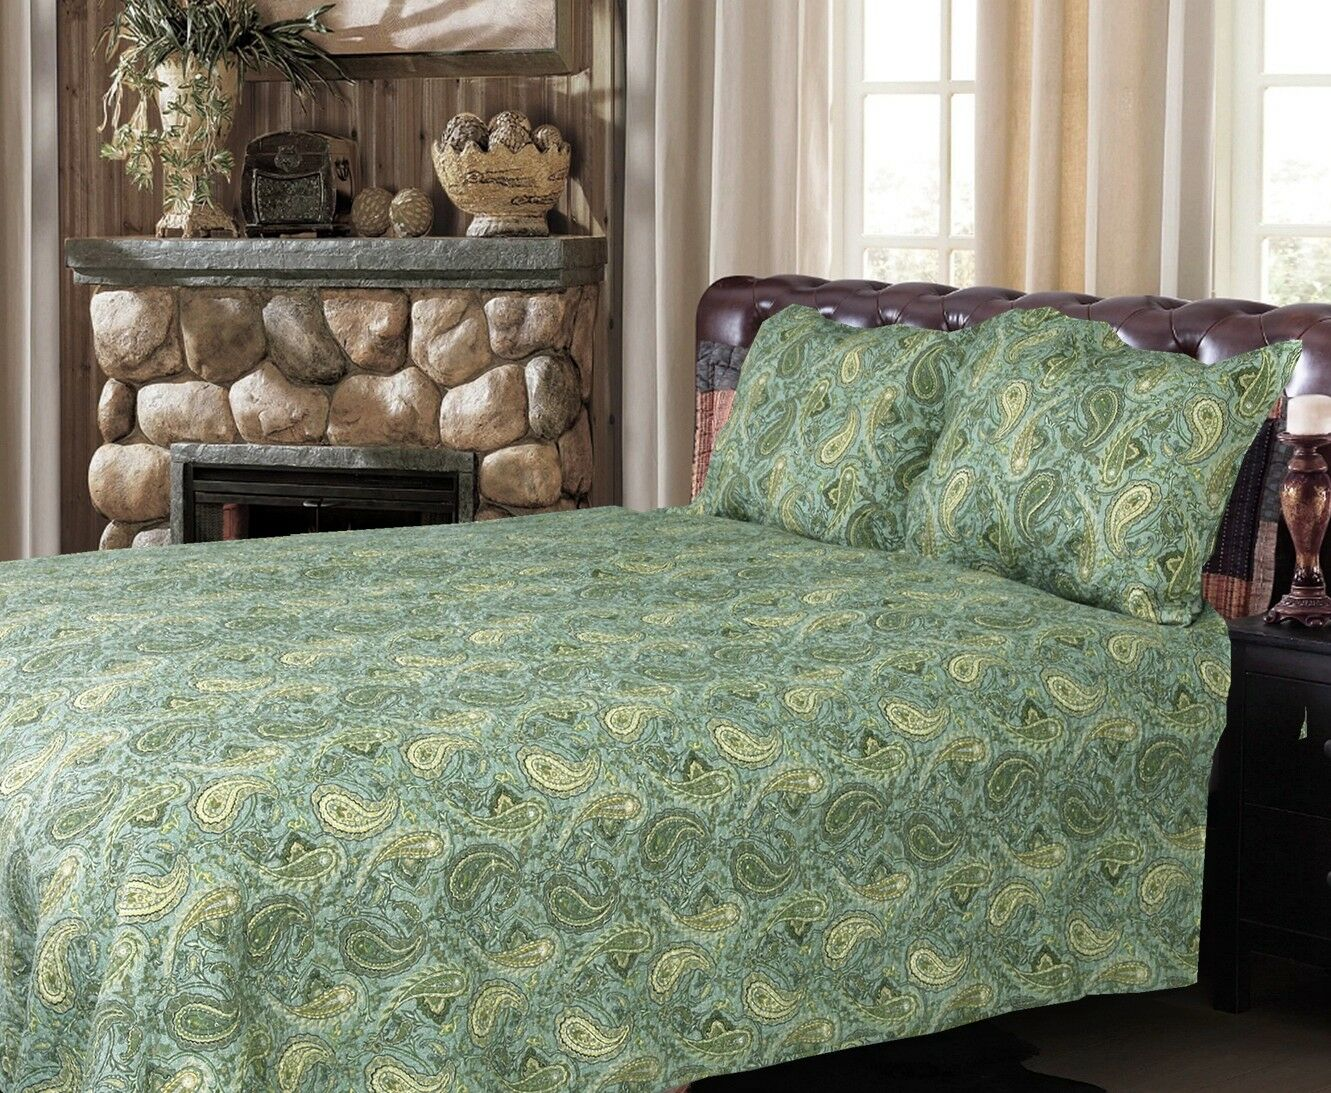 Grün Persian 100% Cotton 3-Piece Quilt Set, Bedspread, Coverlet